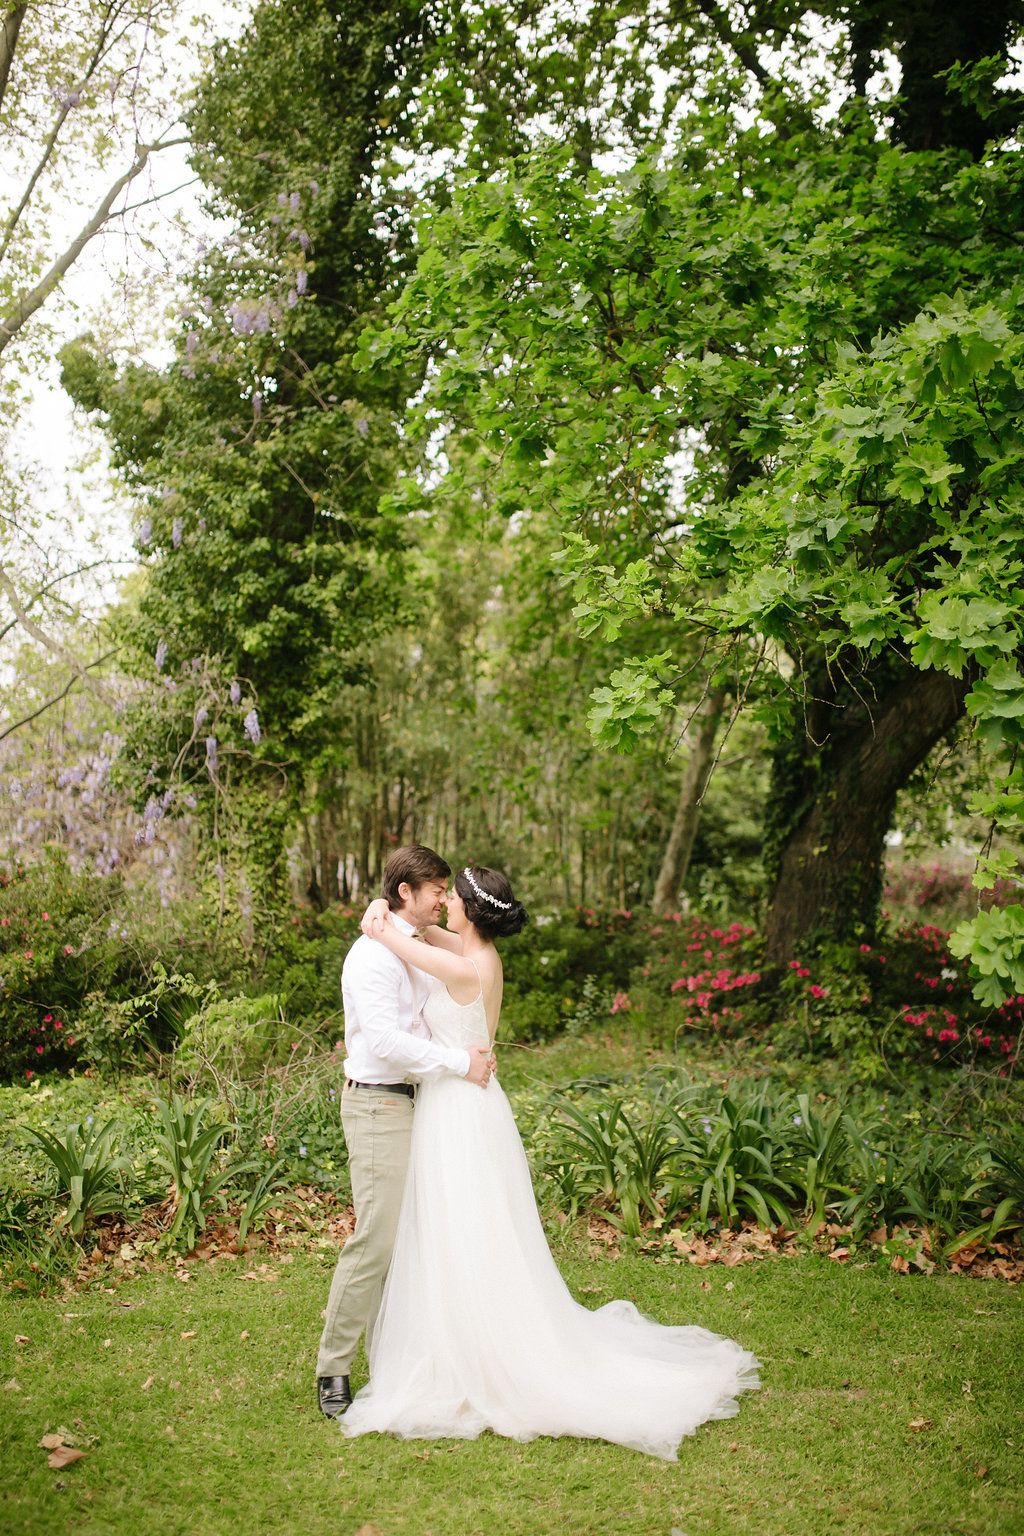 Bride and Groom in Secret Garden | Image: Nelani Van Zyl